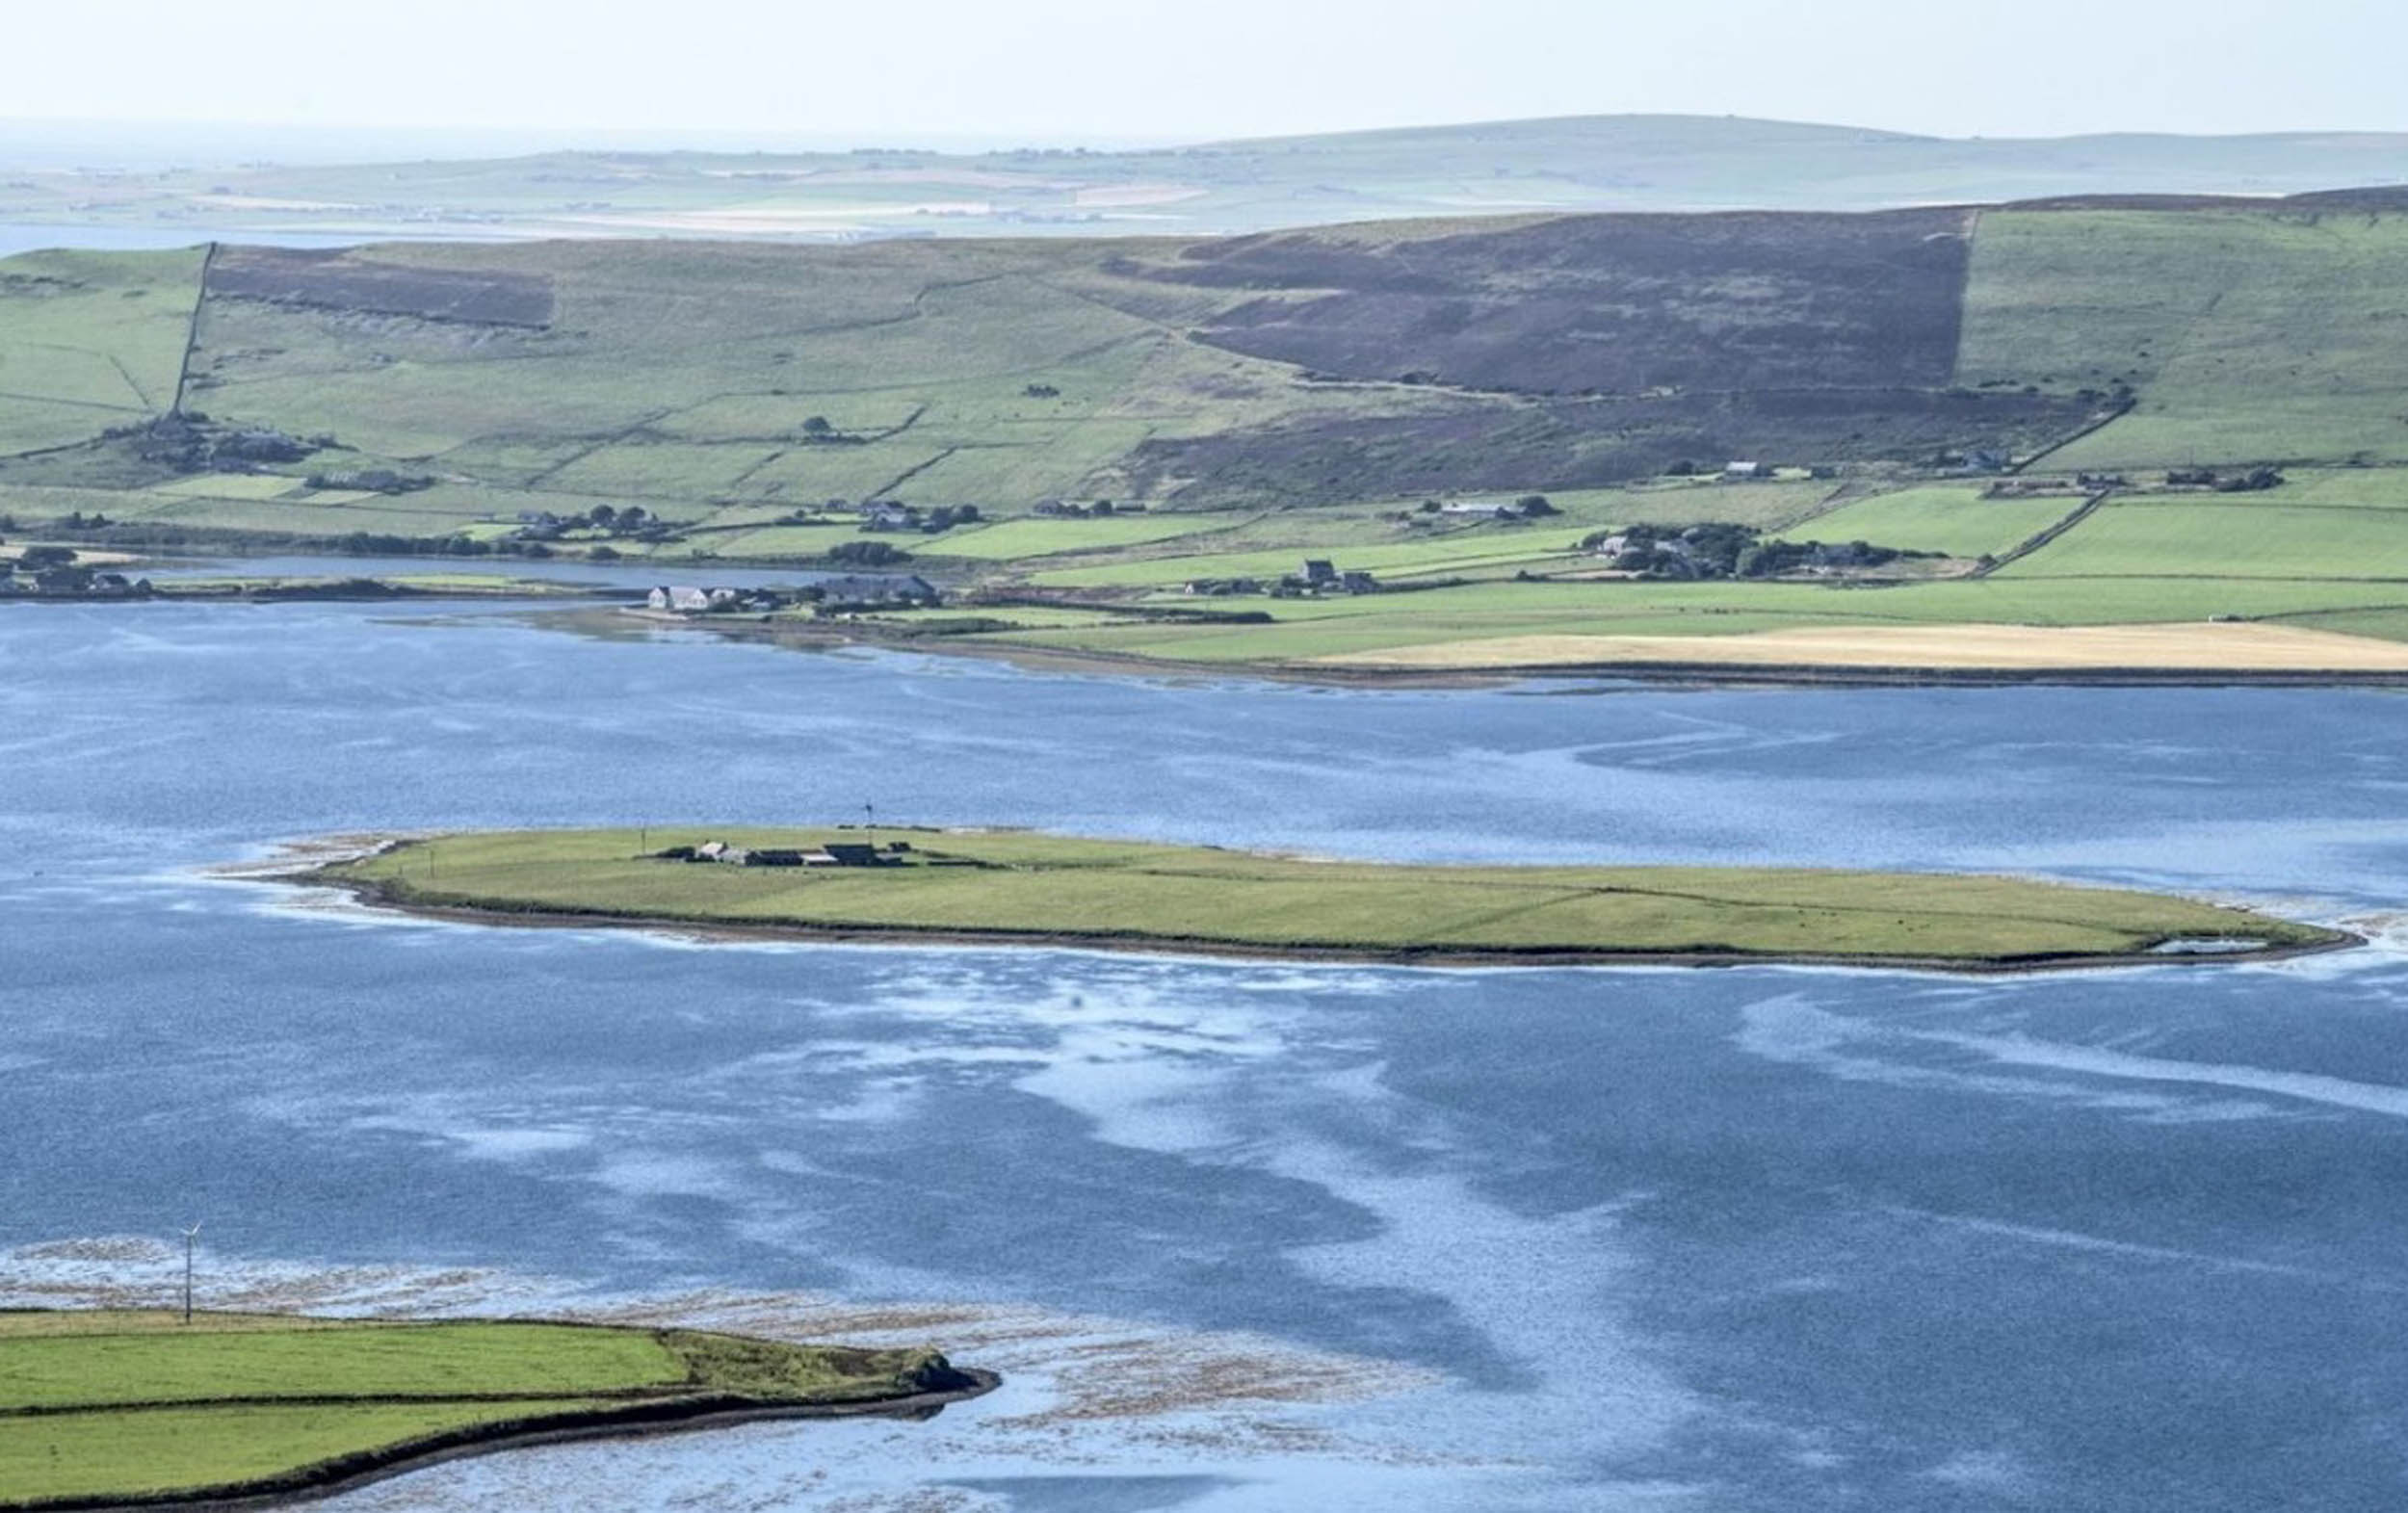 "A REMOTE Scottish island with 40 acres, free electricity and a seal colony is up for sale for half the price of an average London home. The Holm of Grimbister, off the coast of Orkney, is on the market for the first time in 20 years, for just £300,000. The island, once described as the ""loneliest farm in Britain"" also includes a one-bedroom cottage, as well as a mill and a stable. The current population of the island is three, making it 800 times less densely populated than central London. Inhabitants of the Holm can reach the mainland by foot, via a seaweed covered causeway, or by car, when the tide is out. Jamie Watson of Savills estate agents, who are marketing the island, said the property allowed a buyer to ""get away from it all"" whilst still being able to access amenities. He said: ""Attractions include seal colonies and a wonderful array of nature and wildlife."